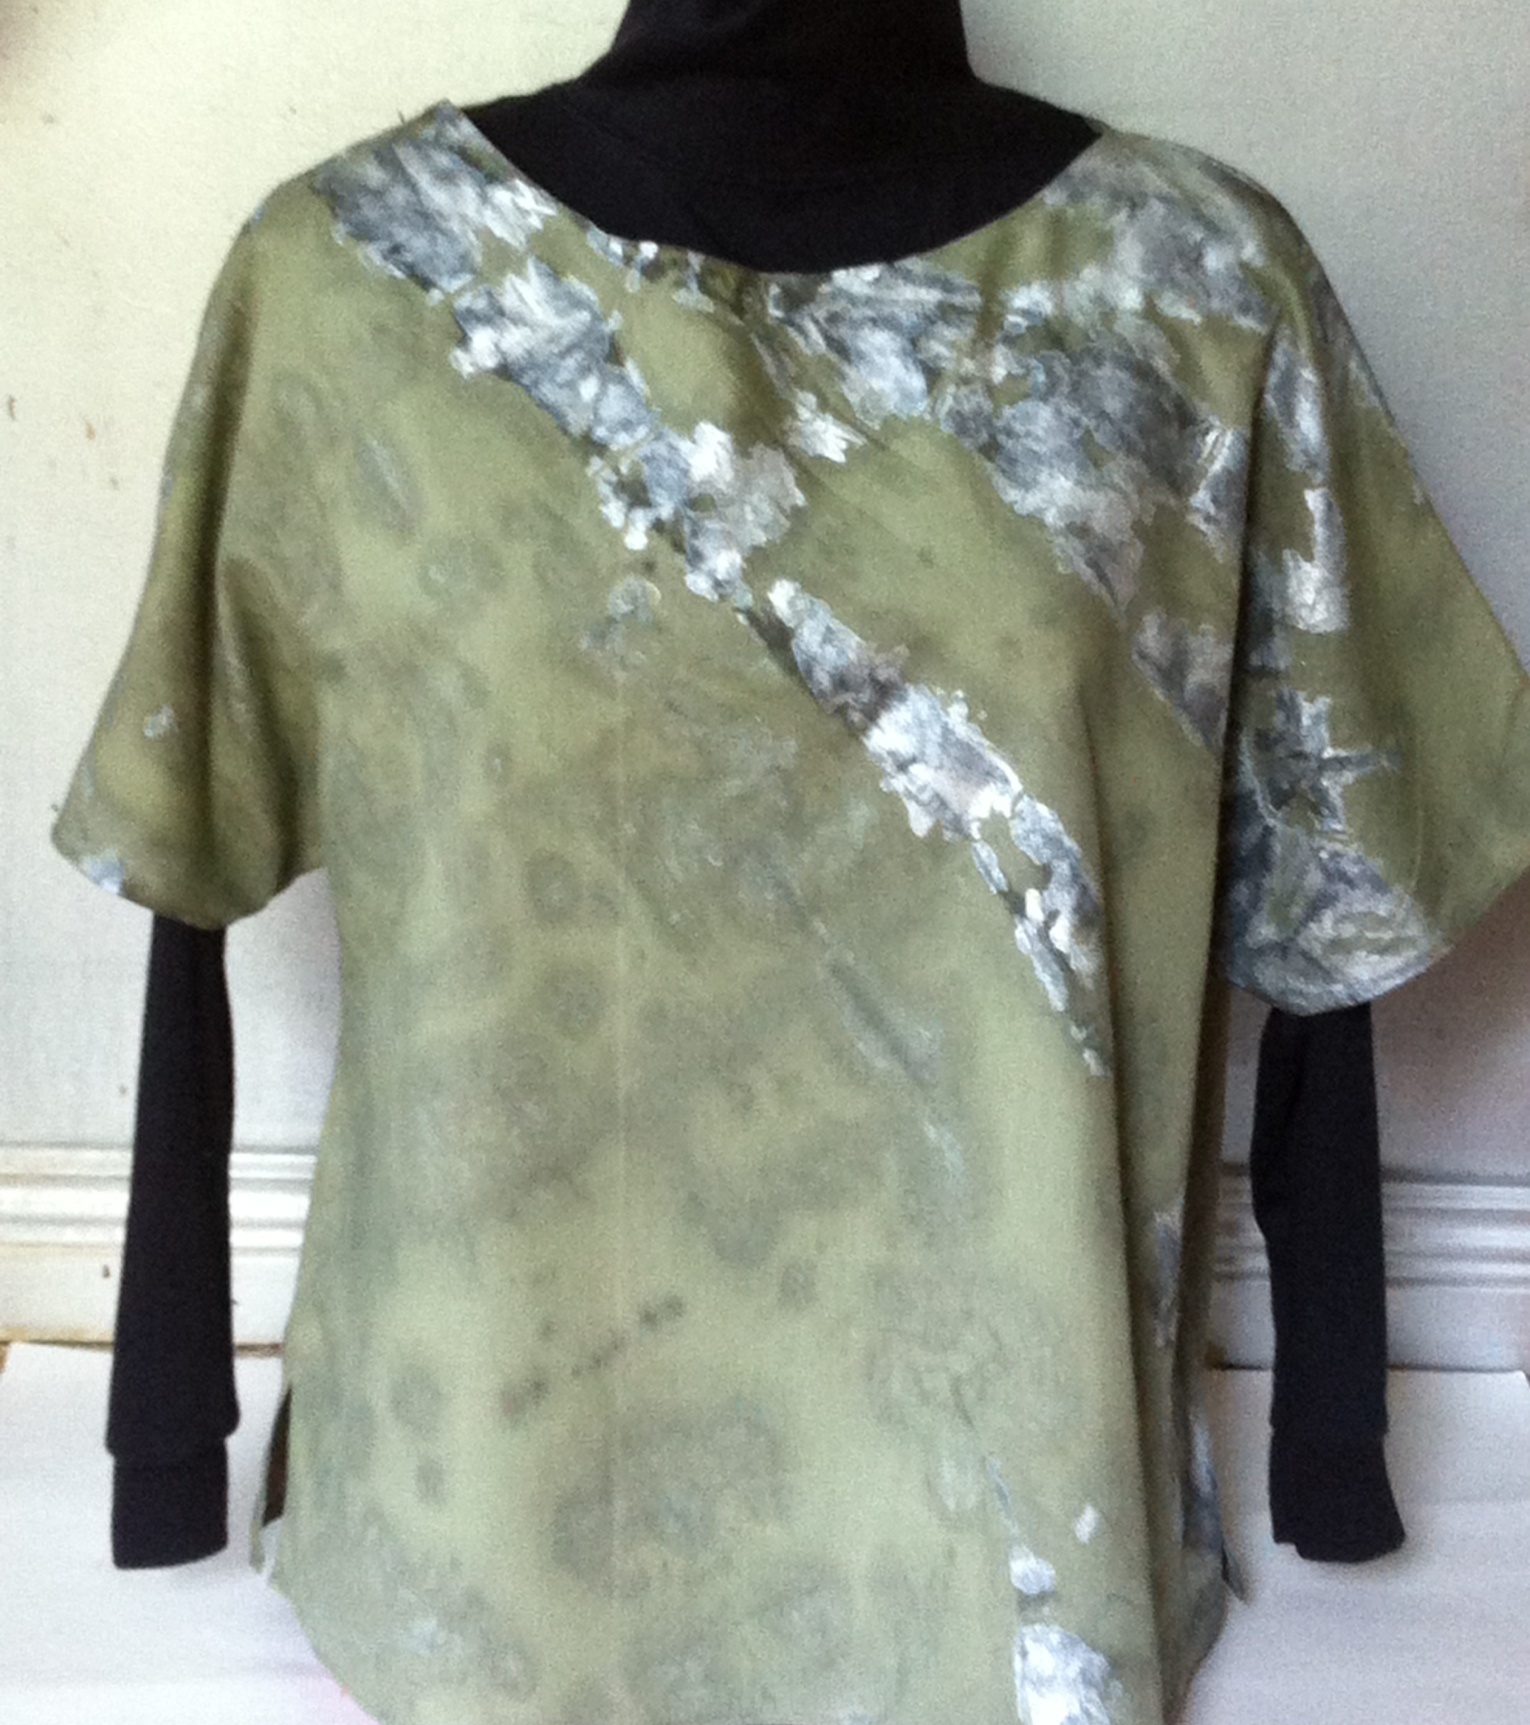 Tie dyed t shirt style blouse